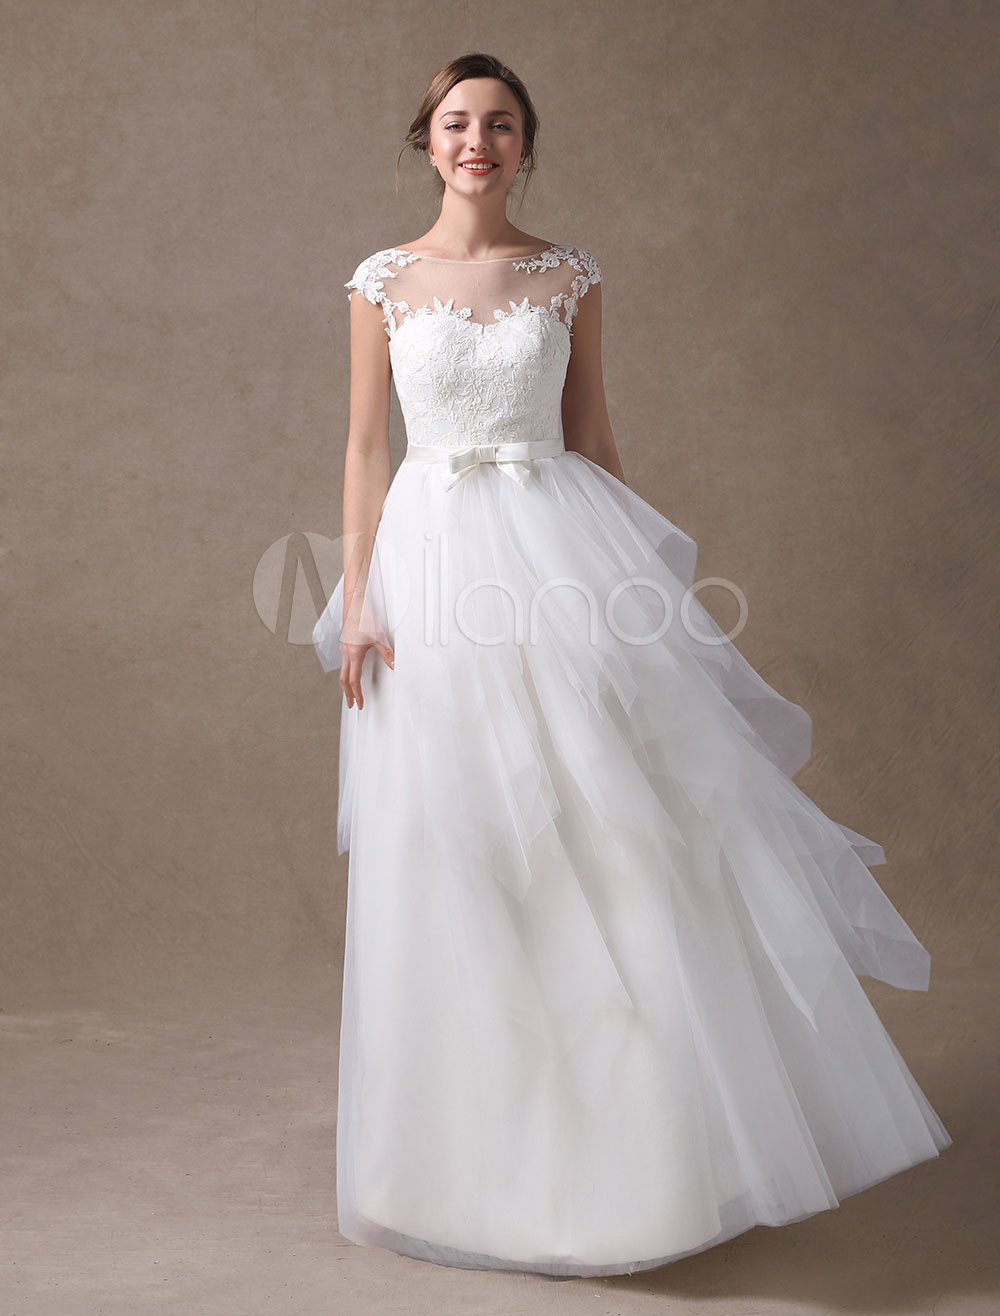 Buy Beach Wedding Dresses Ivory Backless Summer Bridal Gown A Line Tulle Tiered Bow Sash Illusion Floor Length Wedding Gowns for $191.24 in Milanoo store